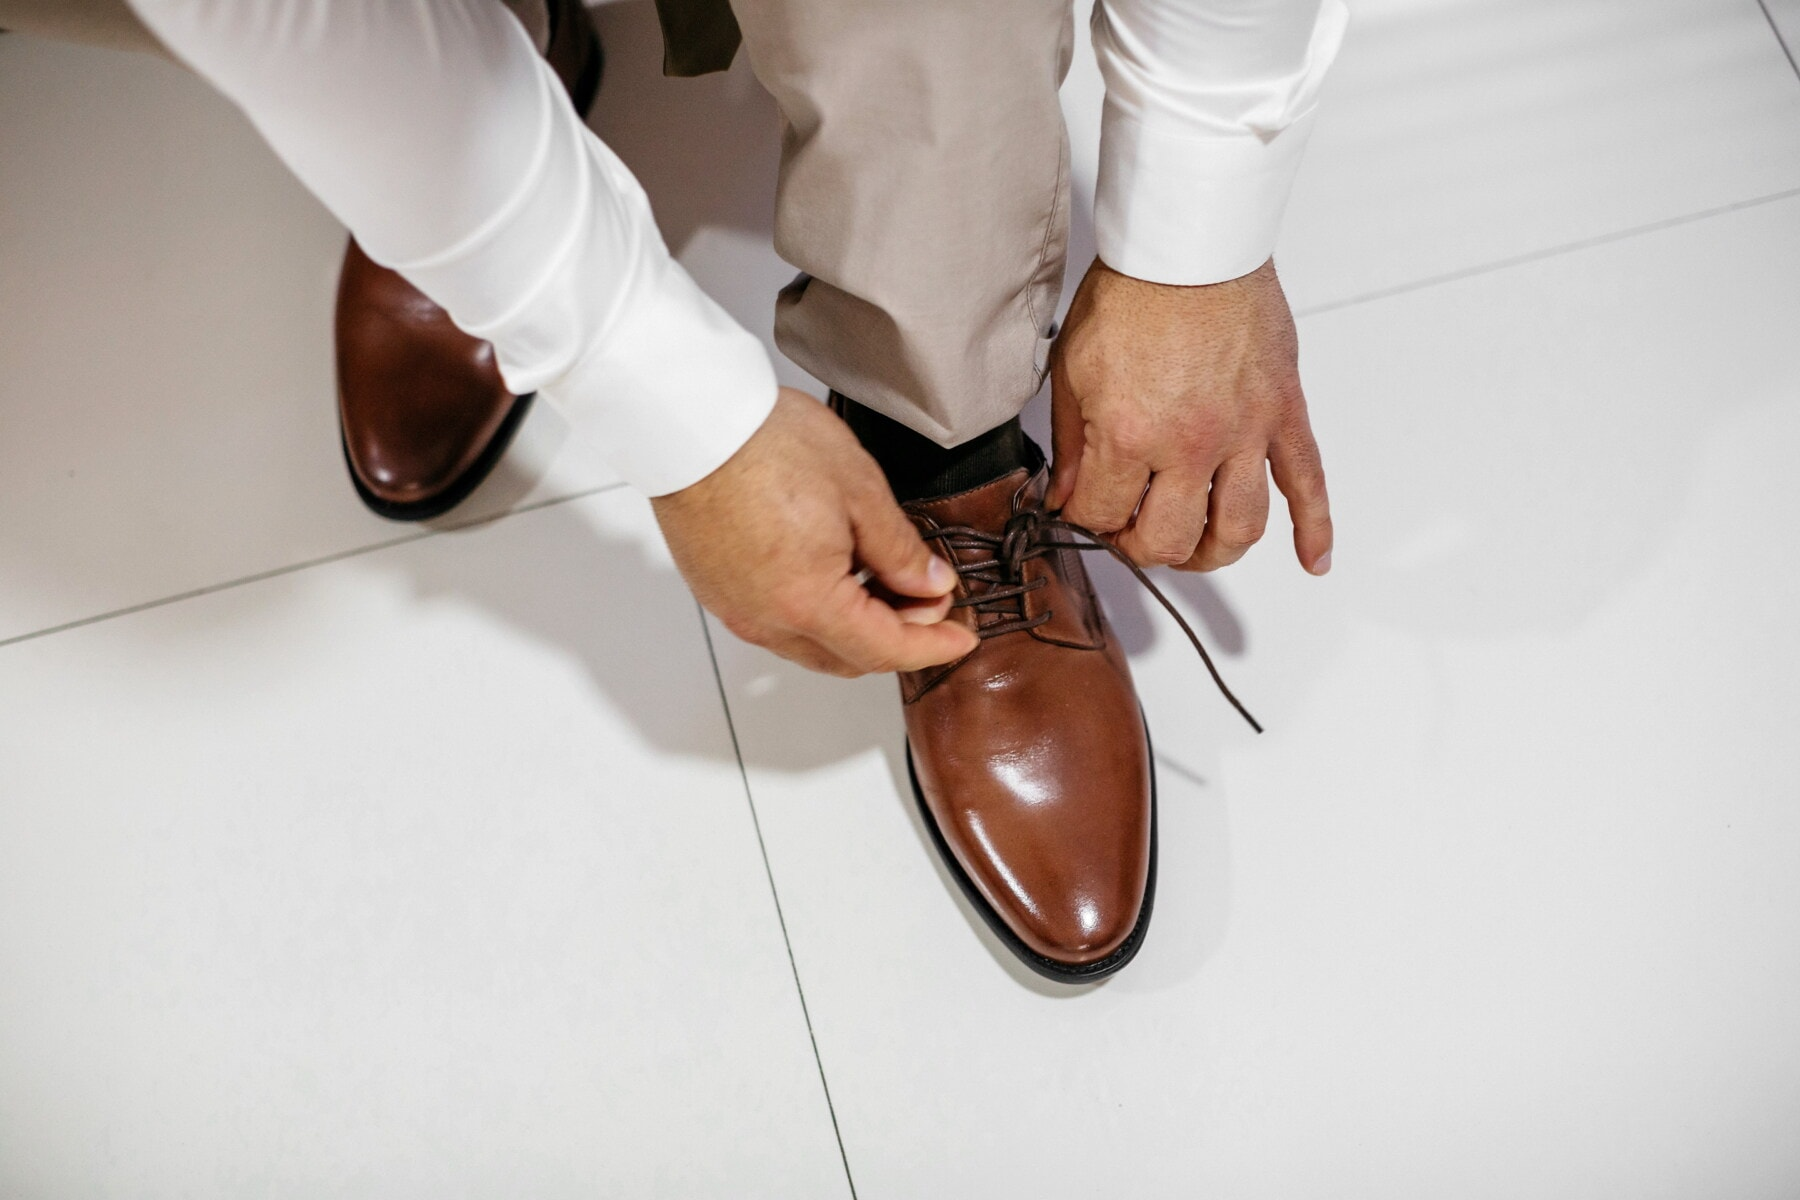 shoes, classic, leather, light brown, shoelace, style, hands, man, legs, floor